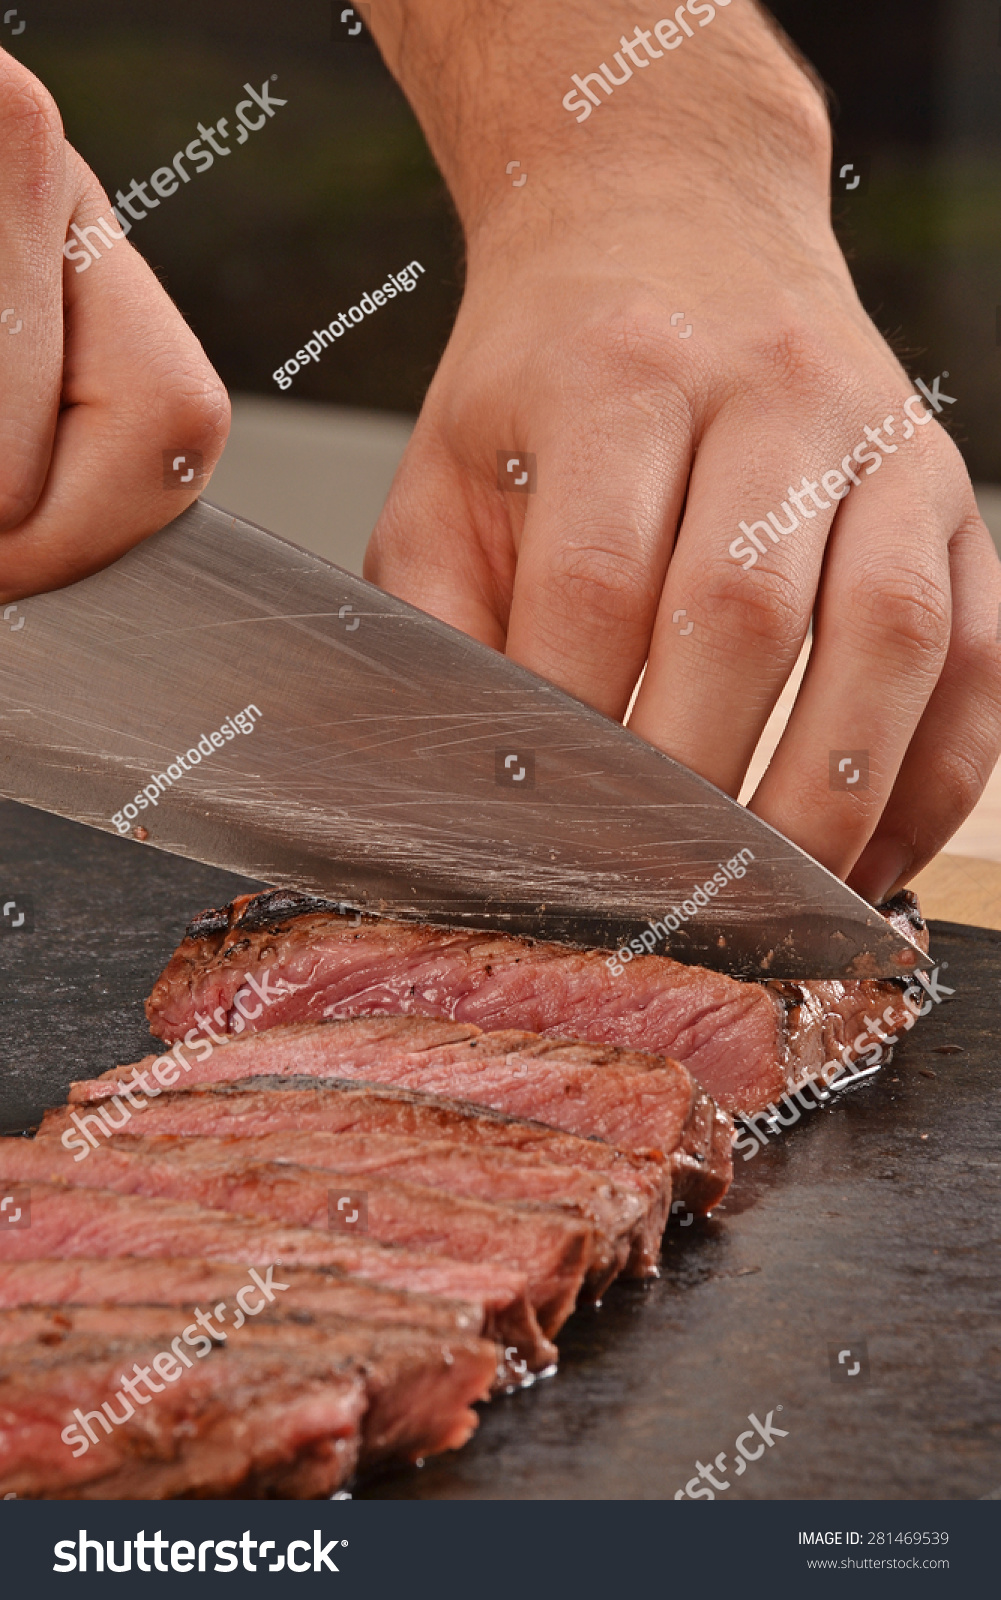 Cook slicing grilled beef steak on stock photo 281469539 shutterstock - Make lamb barbecue ...